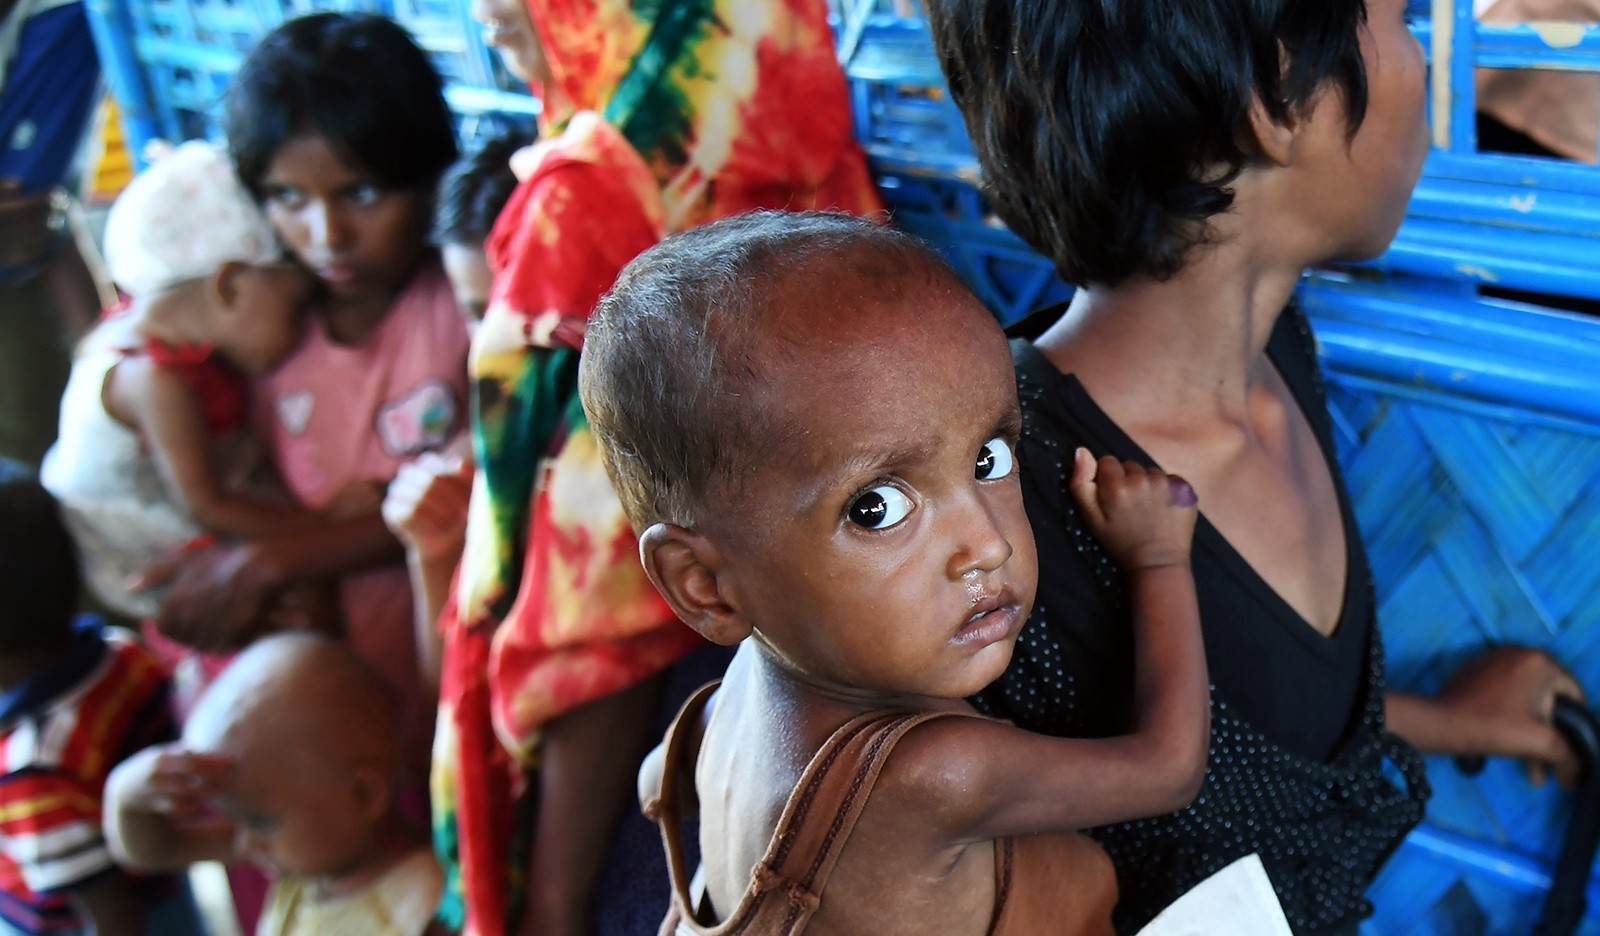 Zahid Hasan, the 1.5 years old Rohingya Muslim refugee with her sister waits to see a doctor to receive treatment for severe malnutrition at the Balukhali refugee camp in Bangladesh's Ukhia district on November 6, 2017 (AFP Photo)